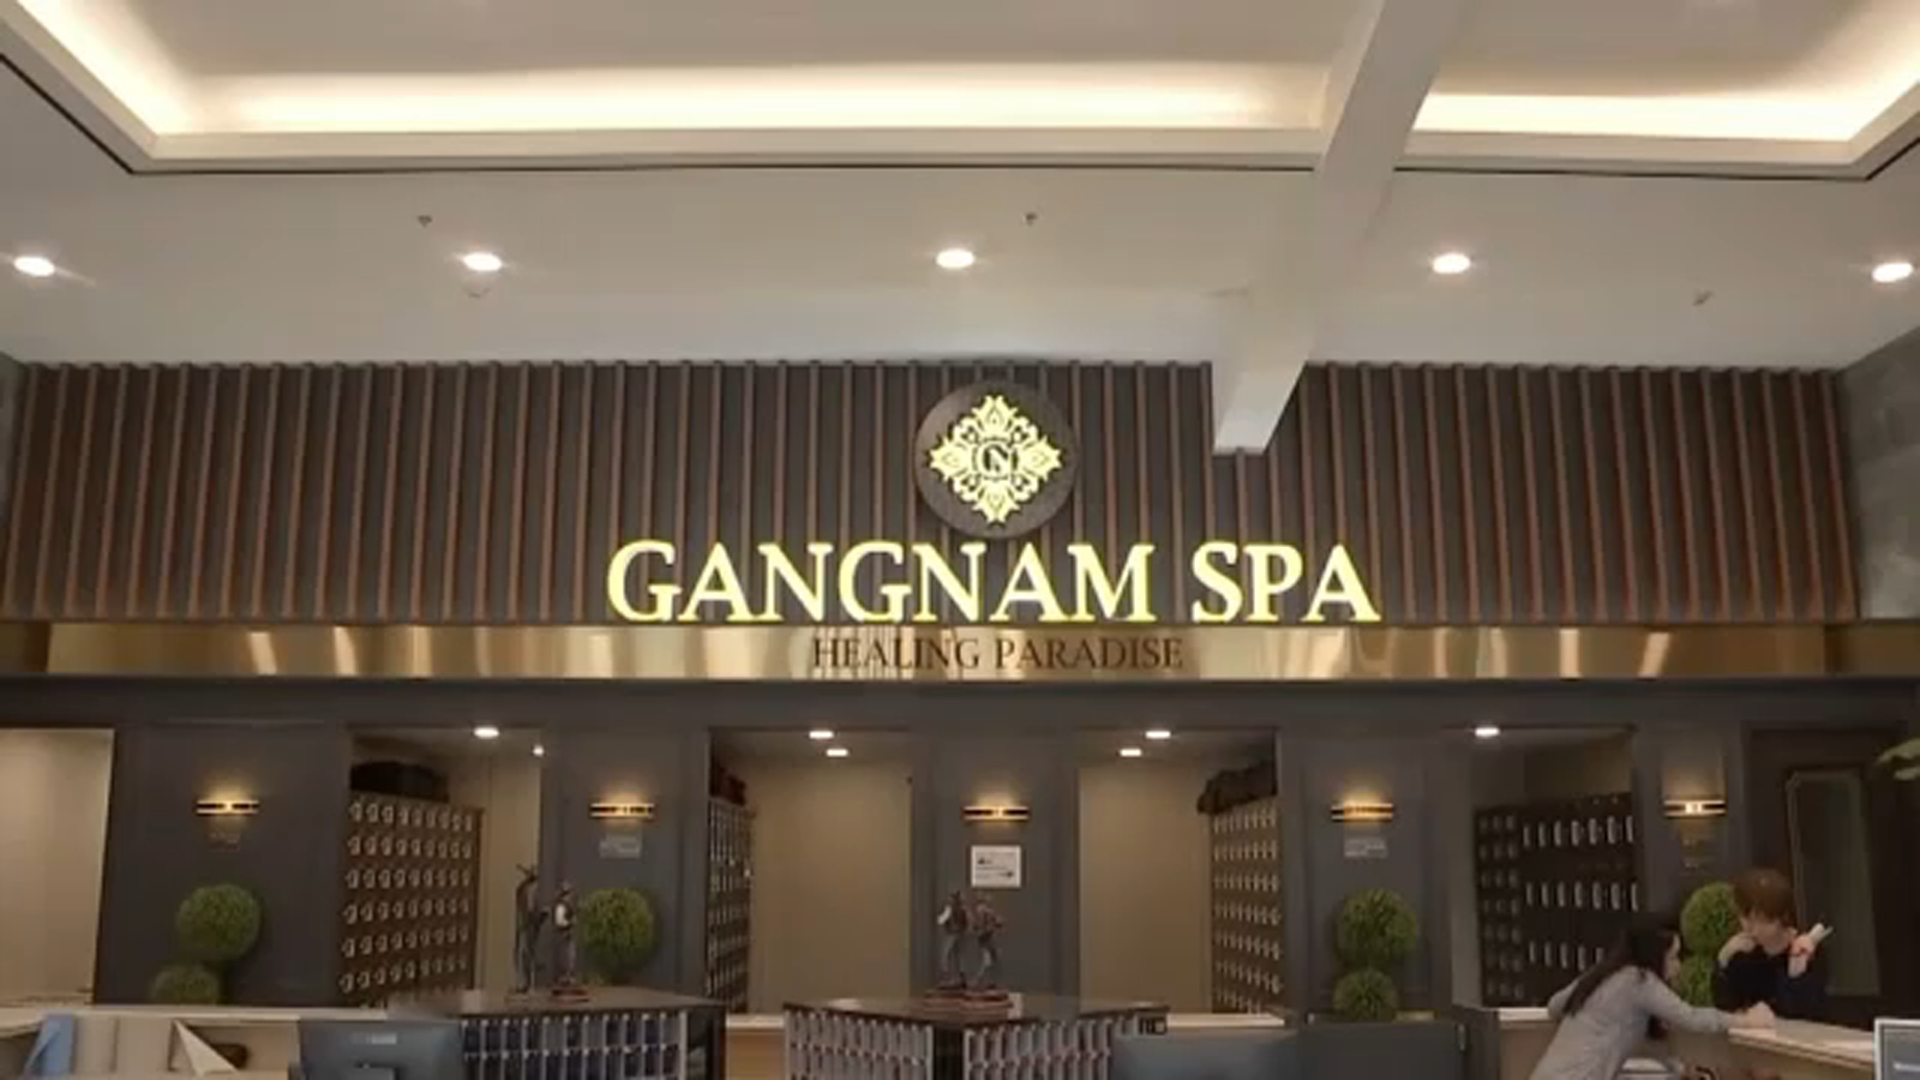 Gangnam Spa 24 Hour Traditional Korean Spa Opens In Nw Houston